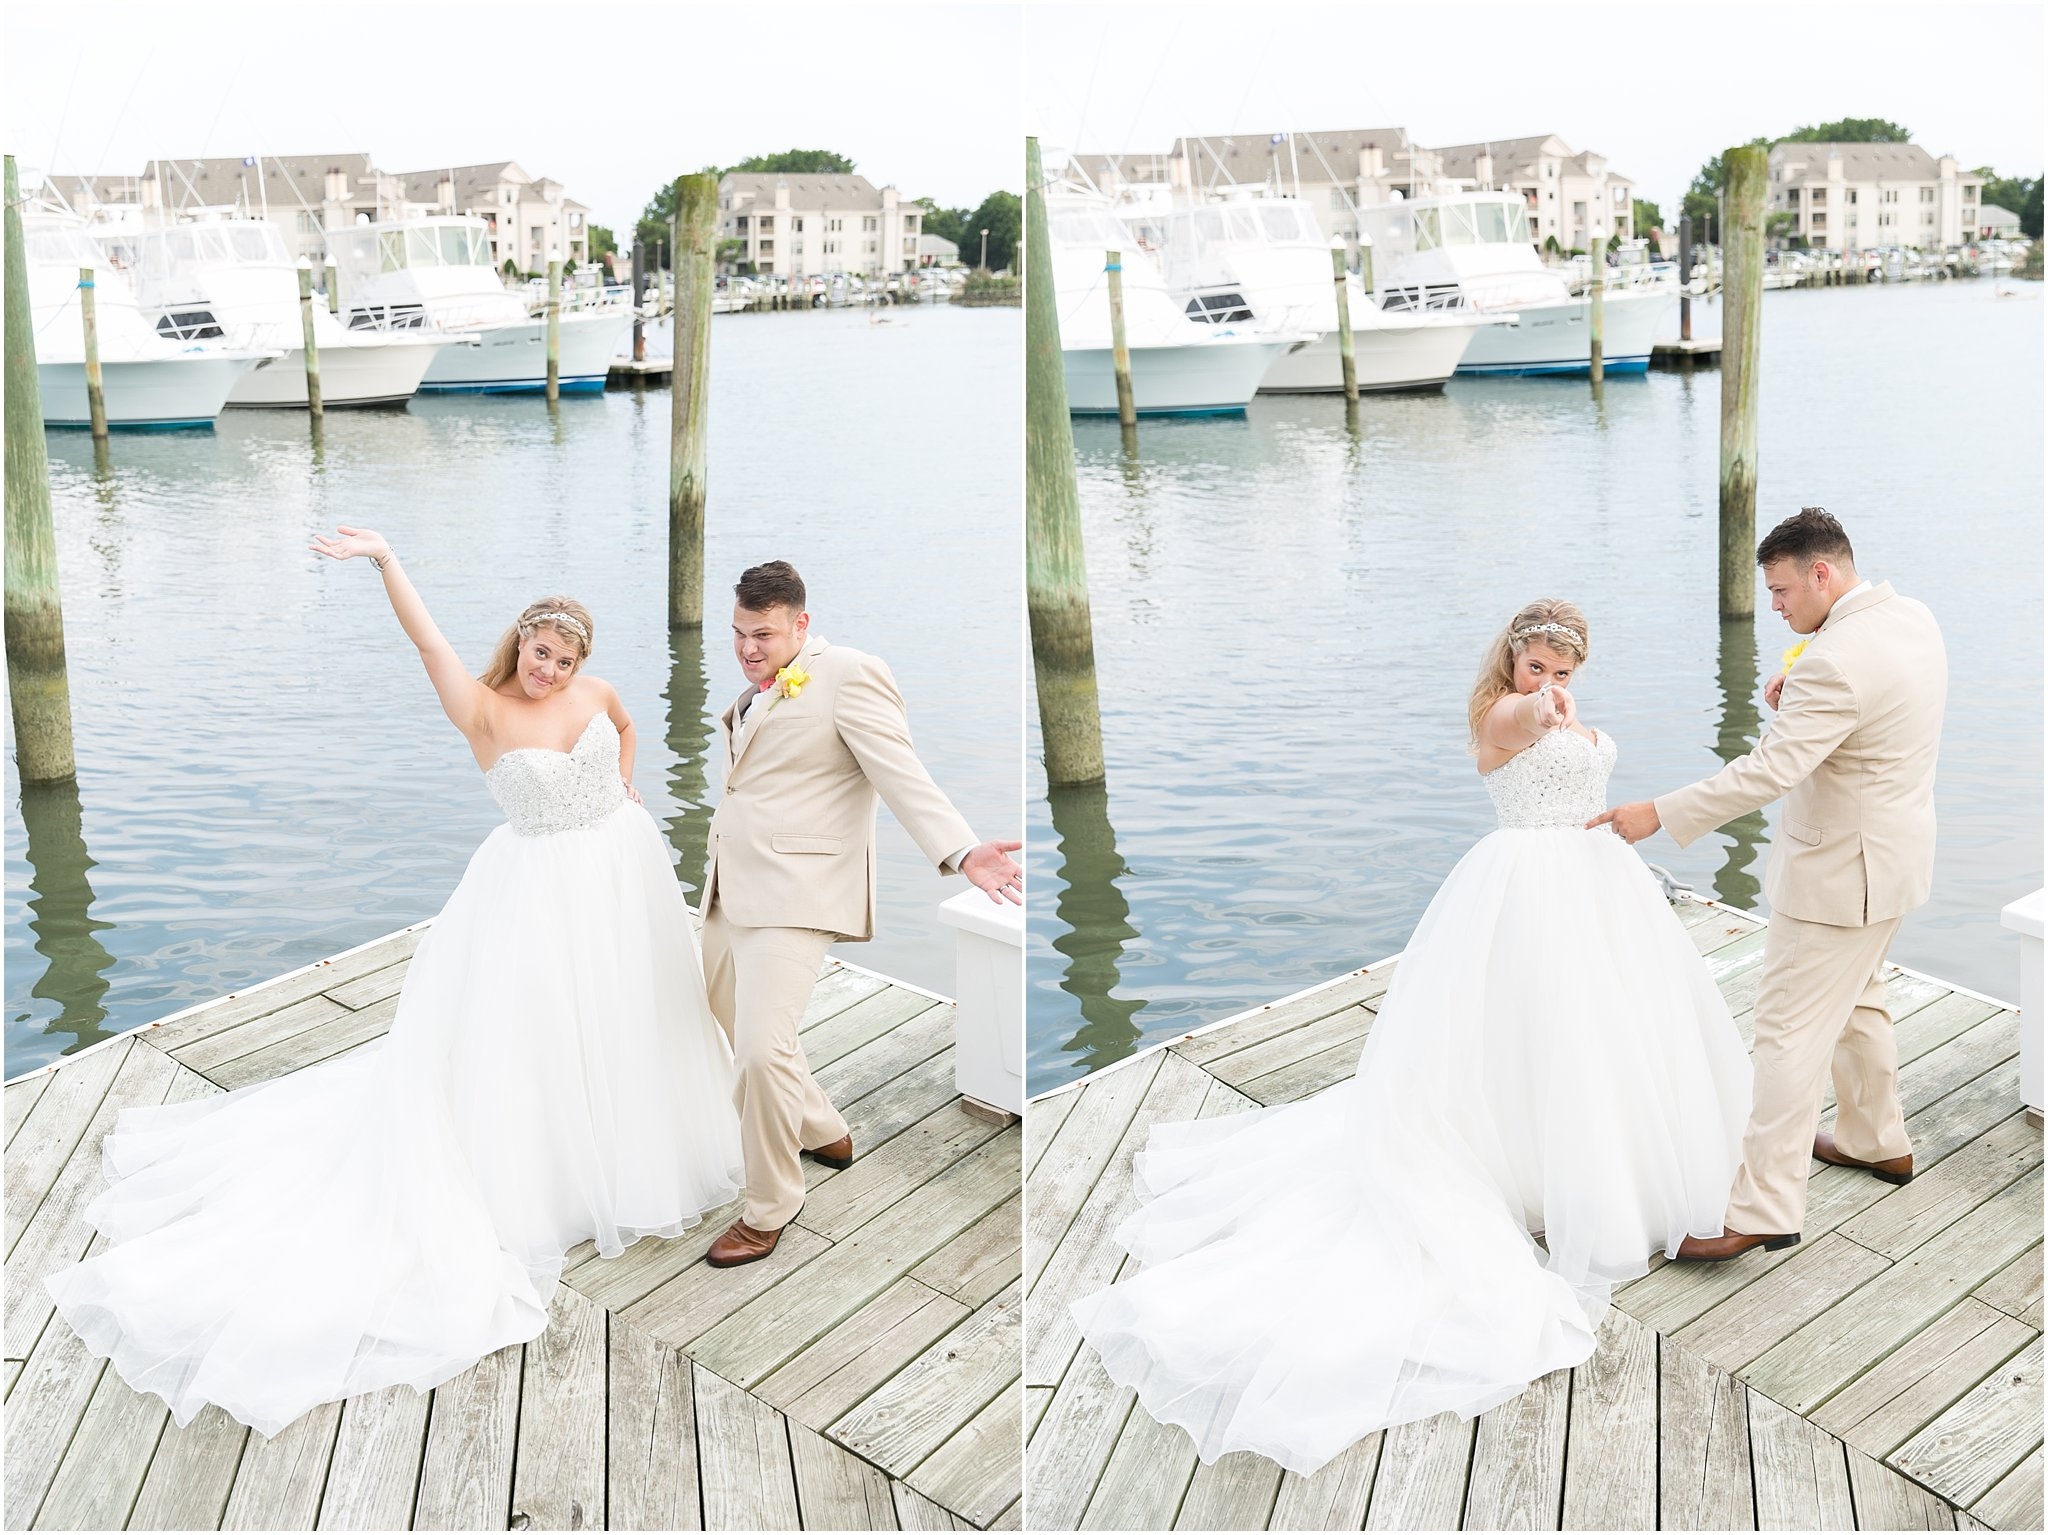 jessica_ryan_photography_wedding_hampton_roads_virginia_virginia_beach_weddings_0622